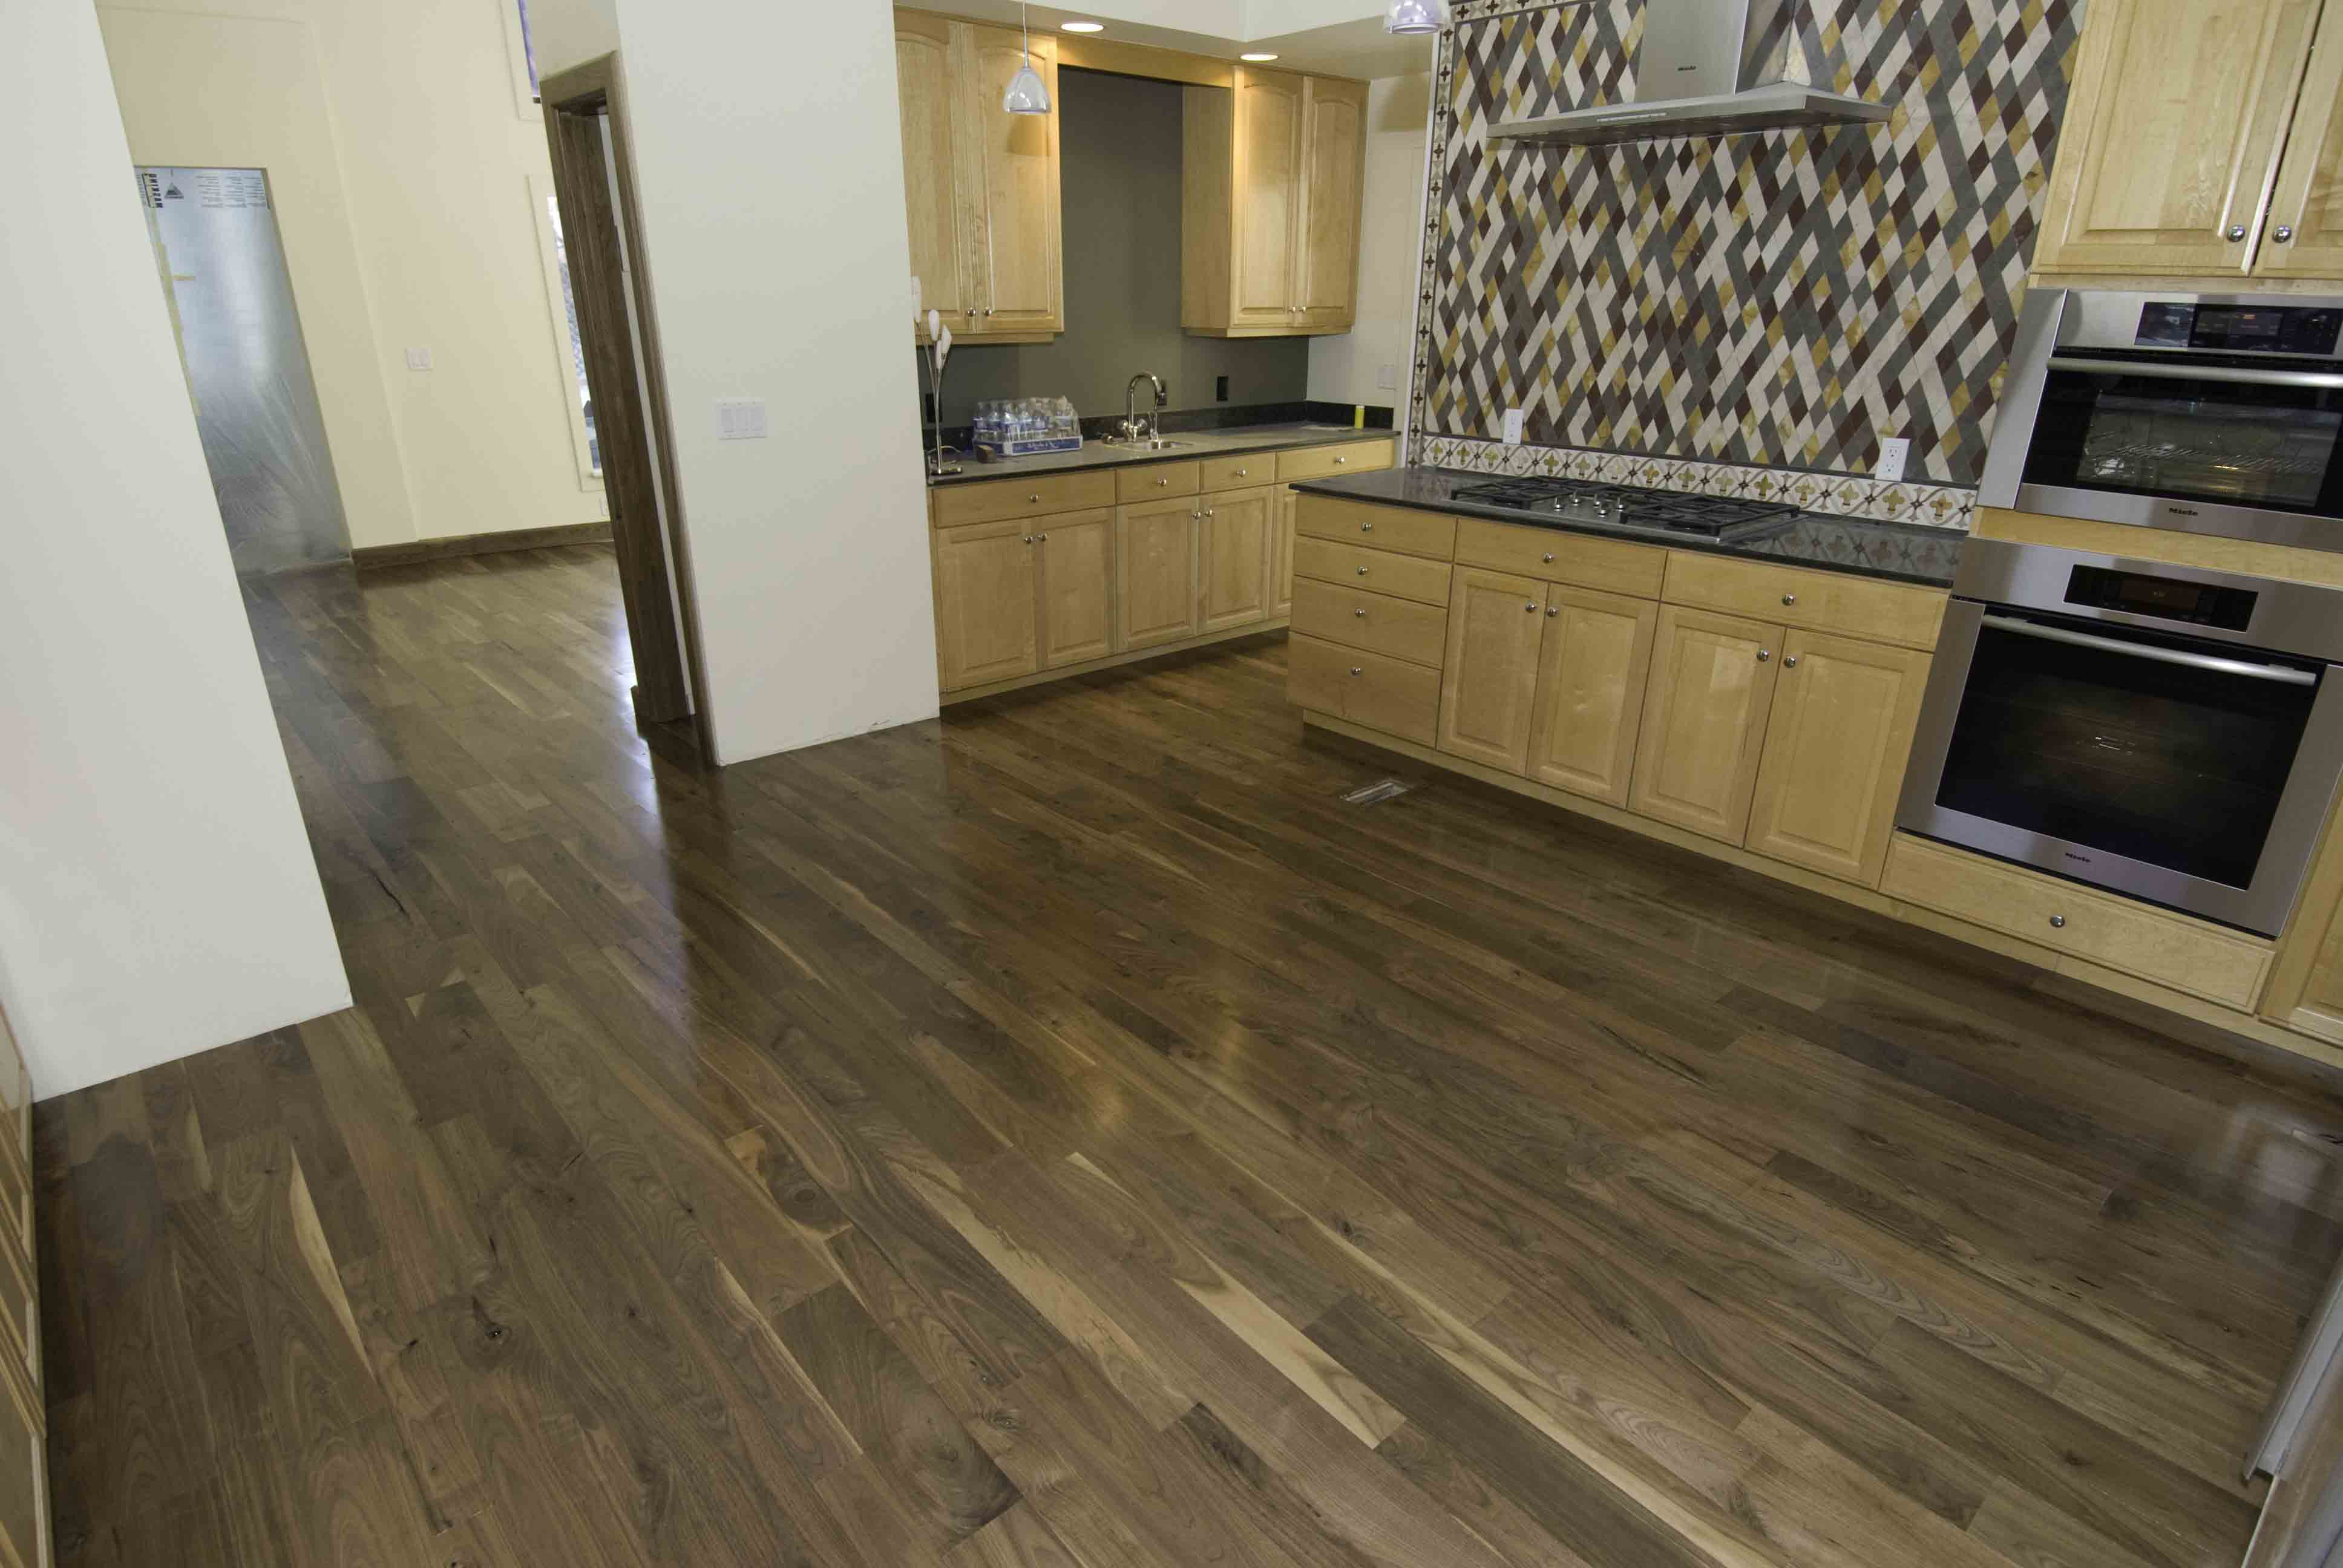 Floor Leveling - Hotfrog US - free local business directory